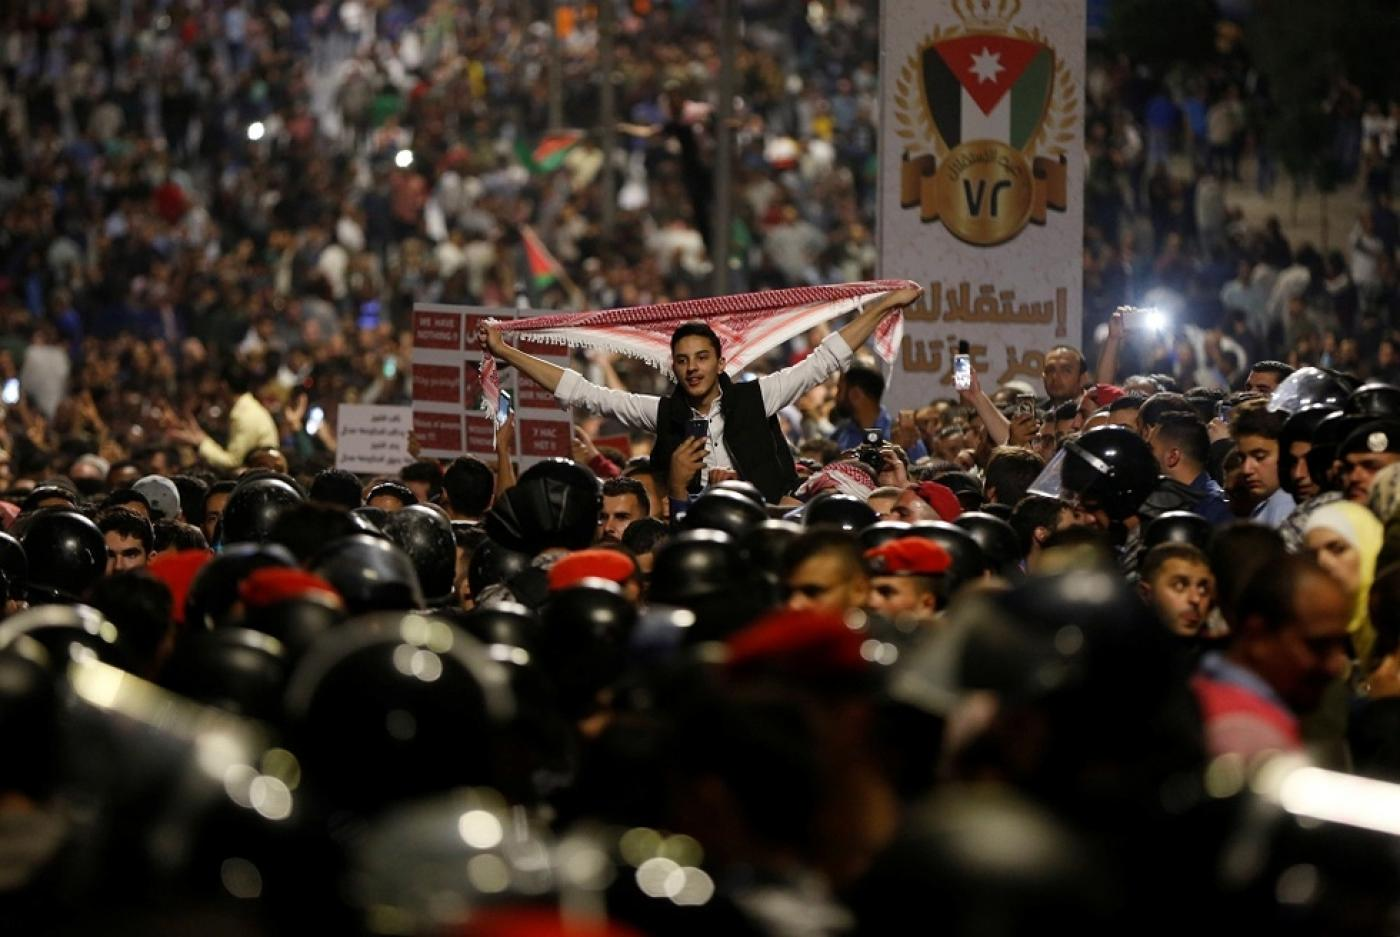 Protests in Jordan: All you need to know | Middle East Eye